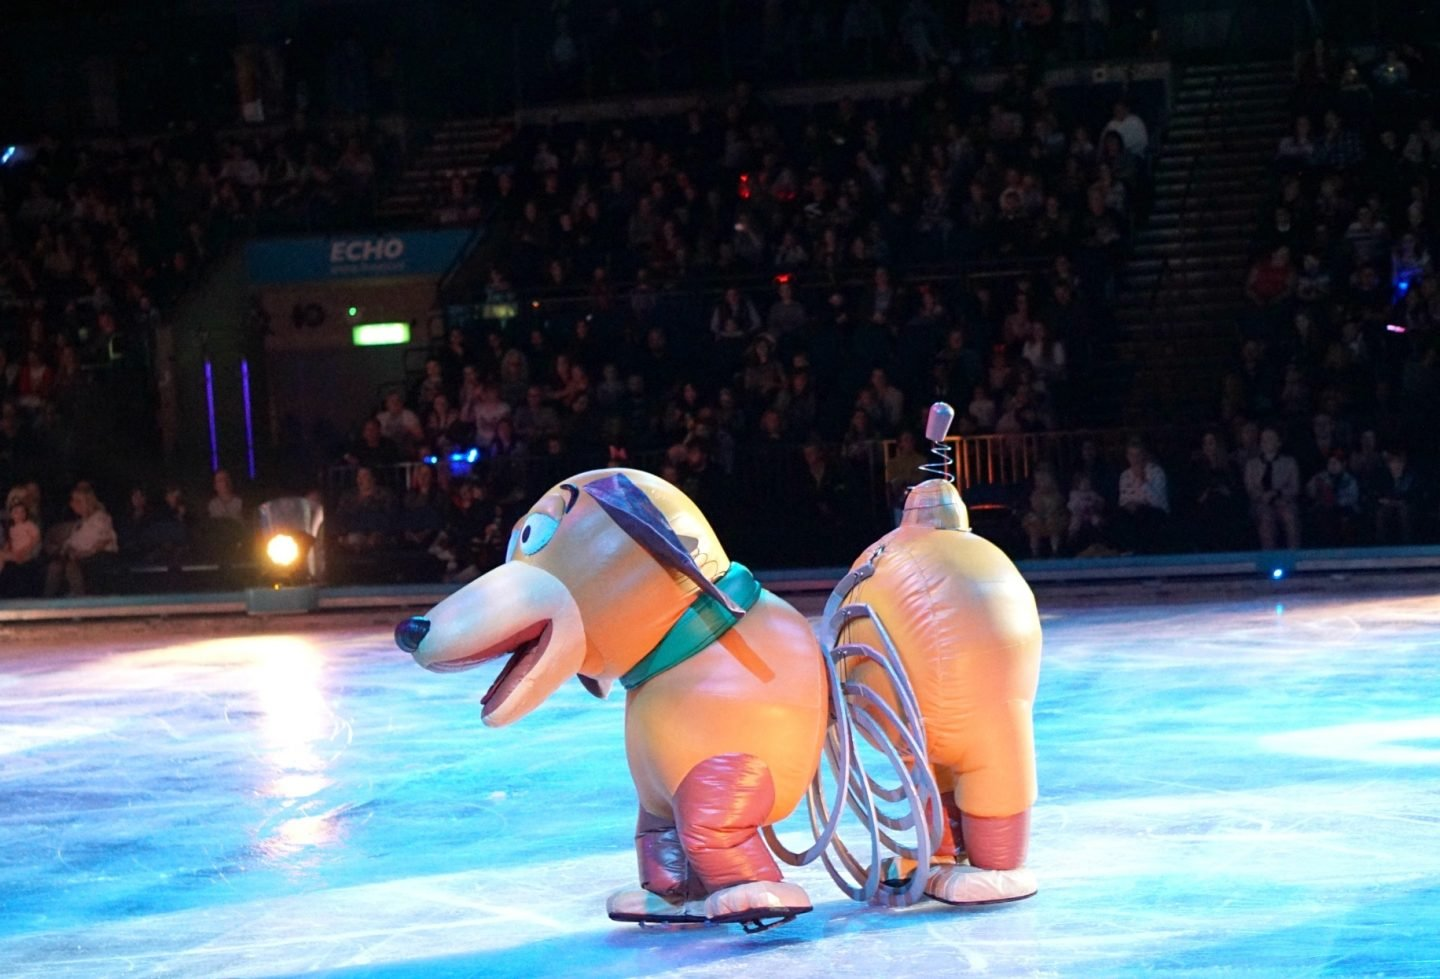 Disney On Ice Echo Arena Liverpool www.extraordianrychoas.com